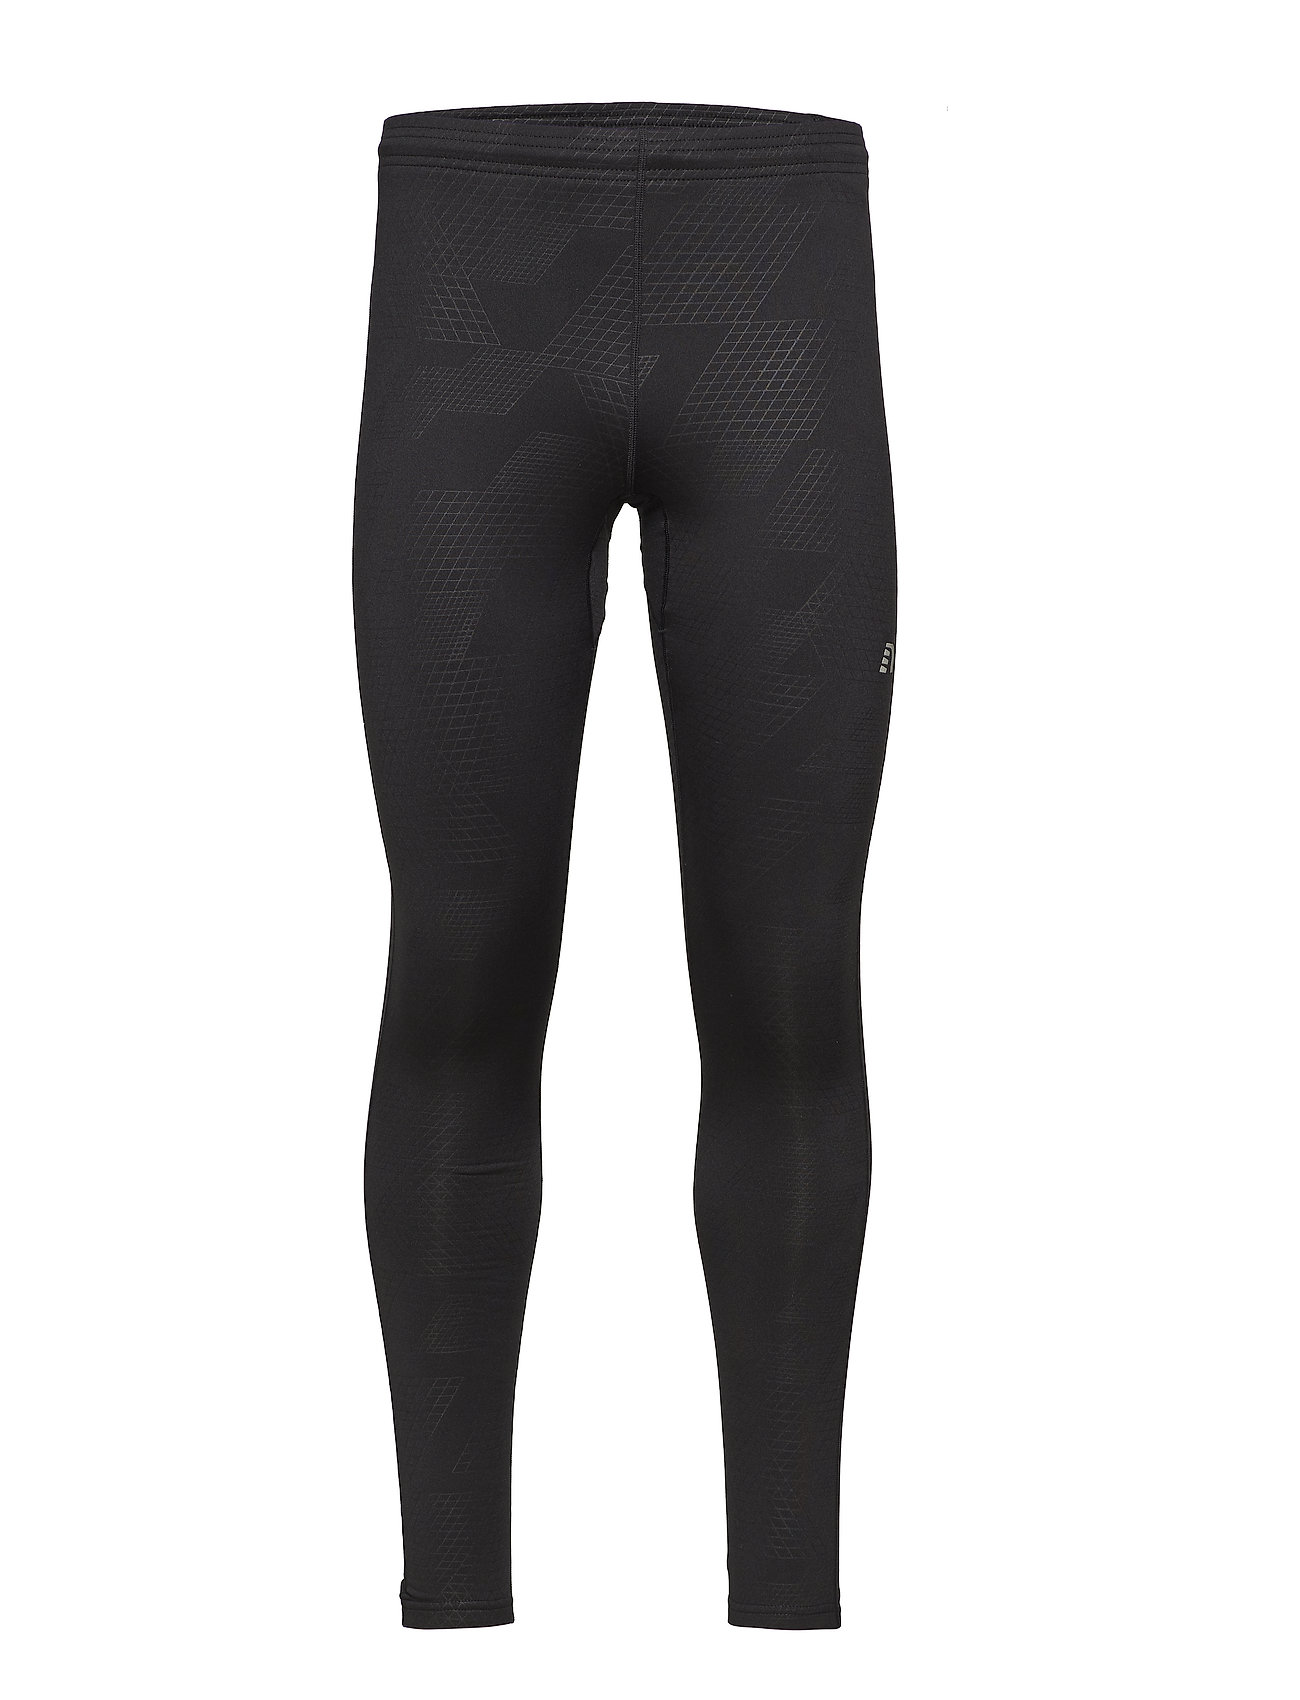 Newline Black Warm Tights - BLACK